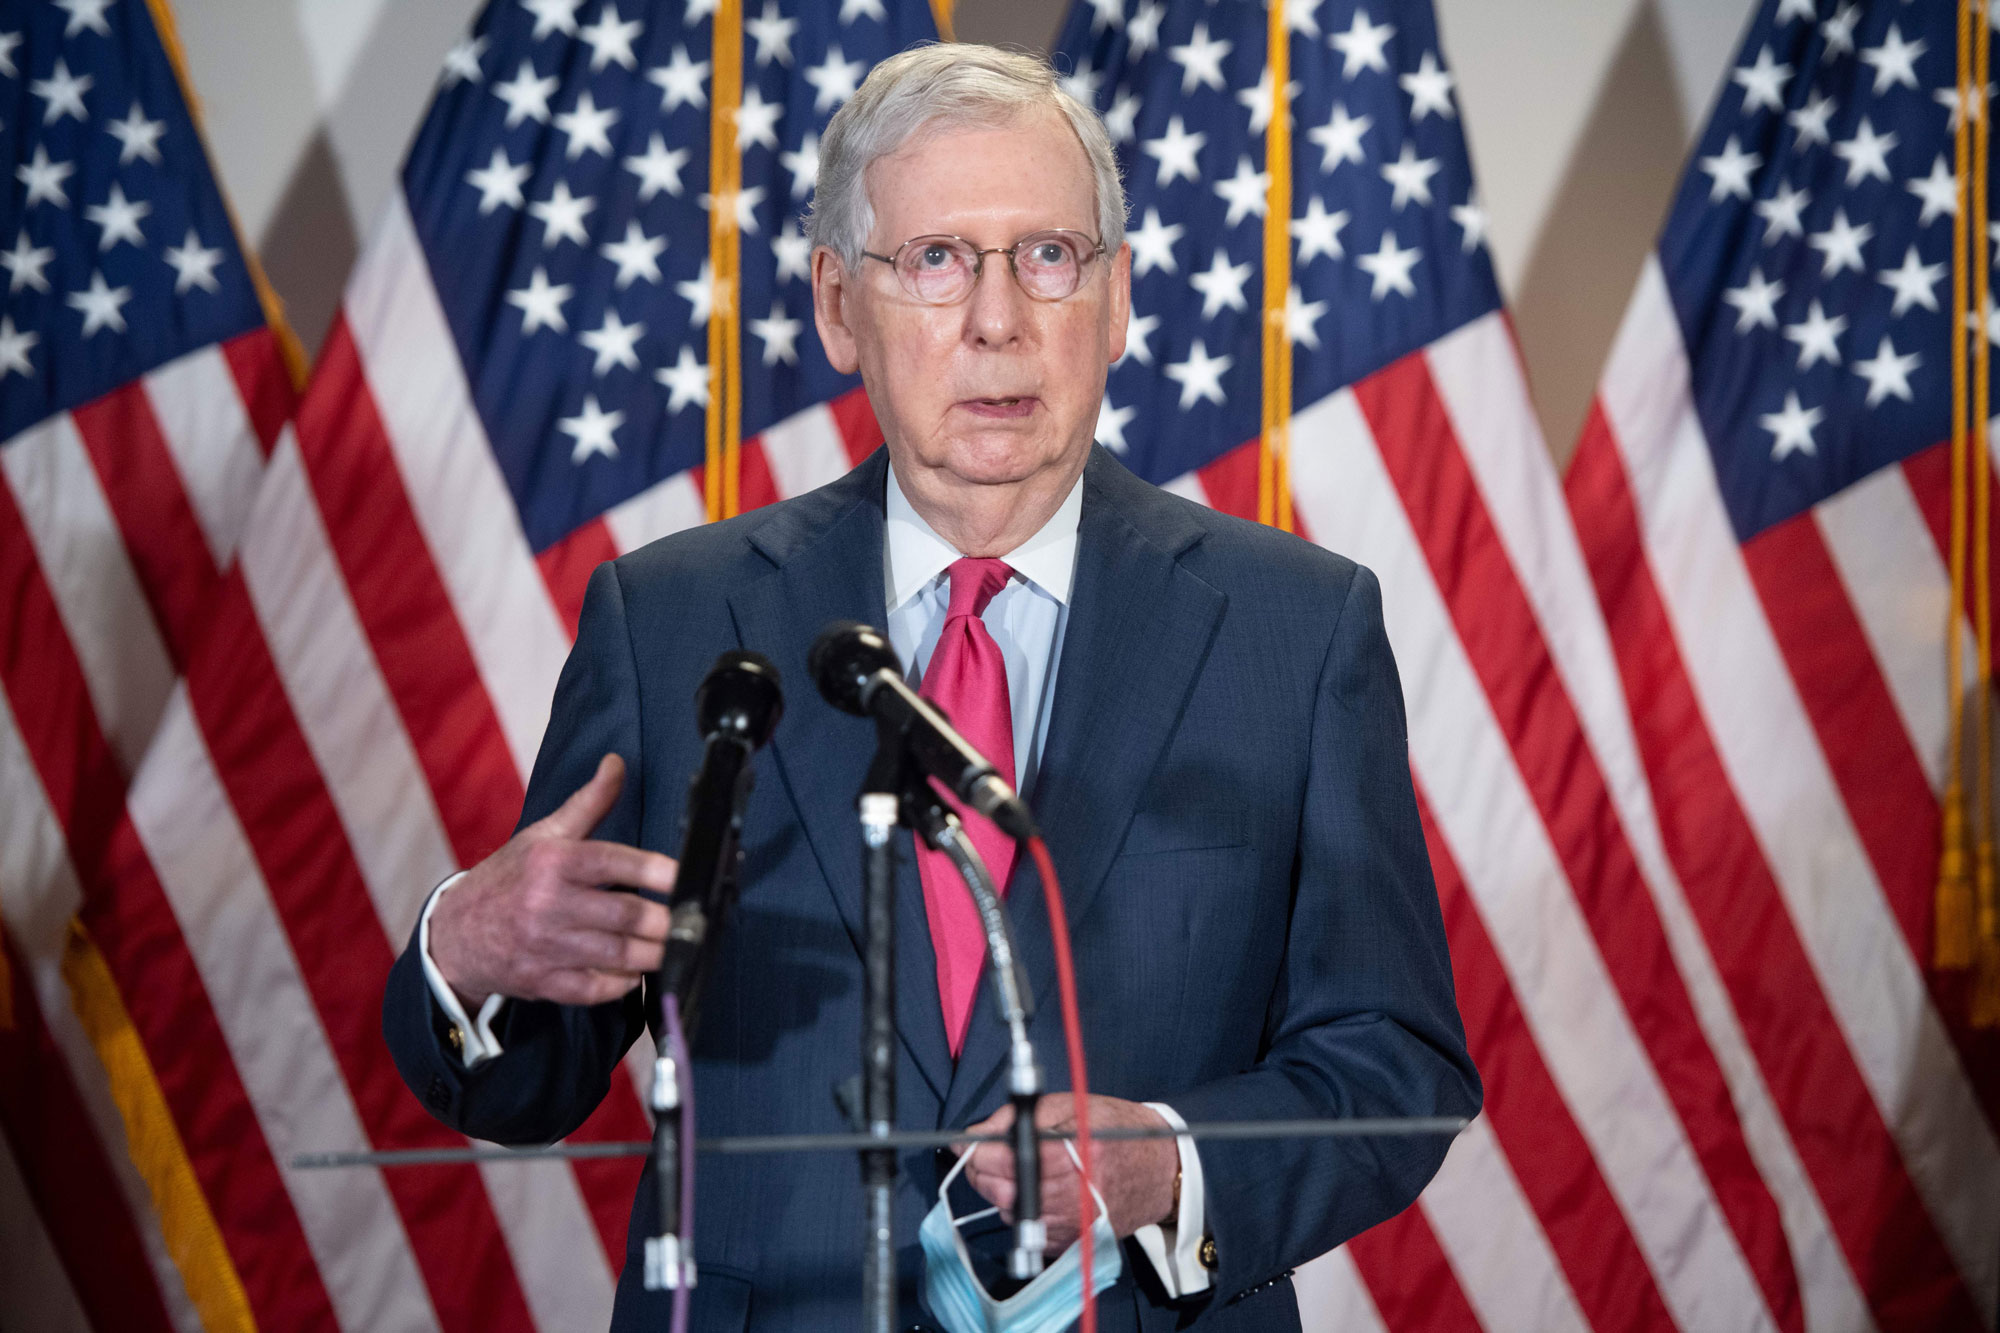 US Senate Majority Leader Mitch McConnell, Republican of Kentucky, speaks to the media on Capitol Hill in Washington on May 19.